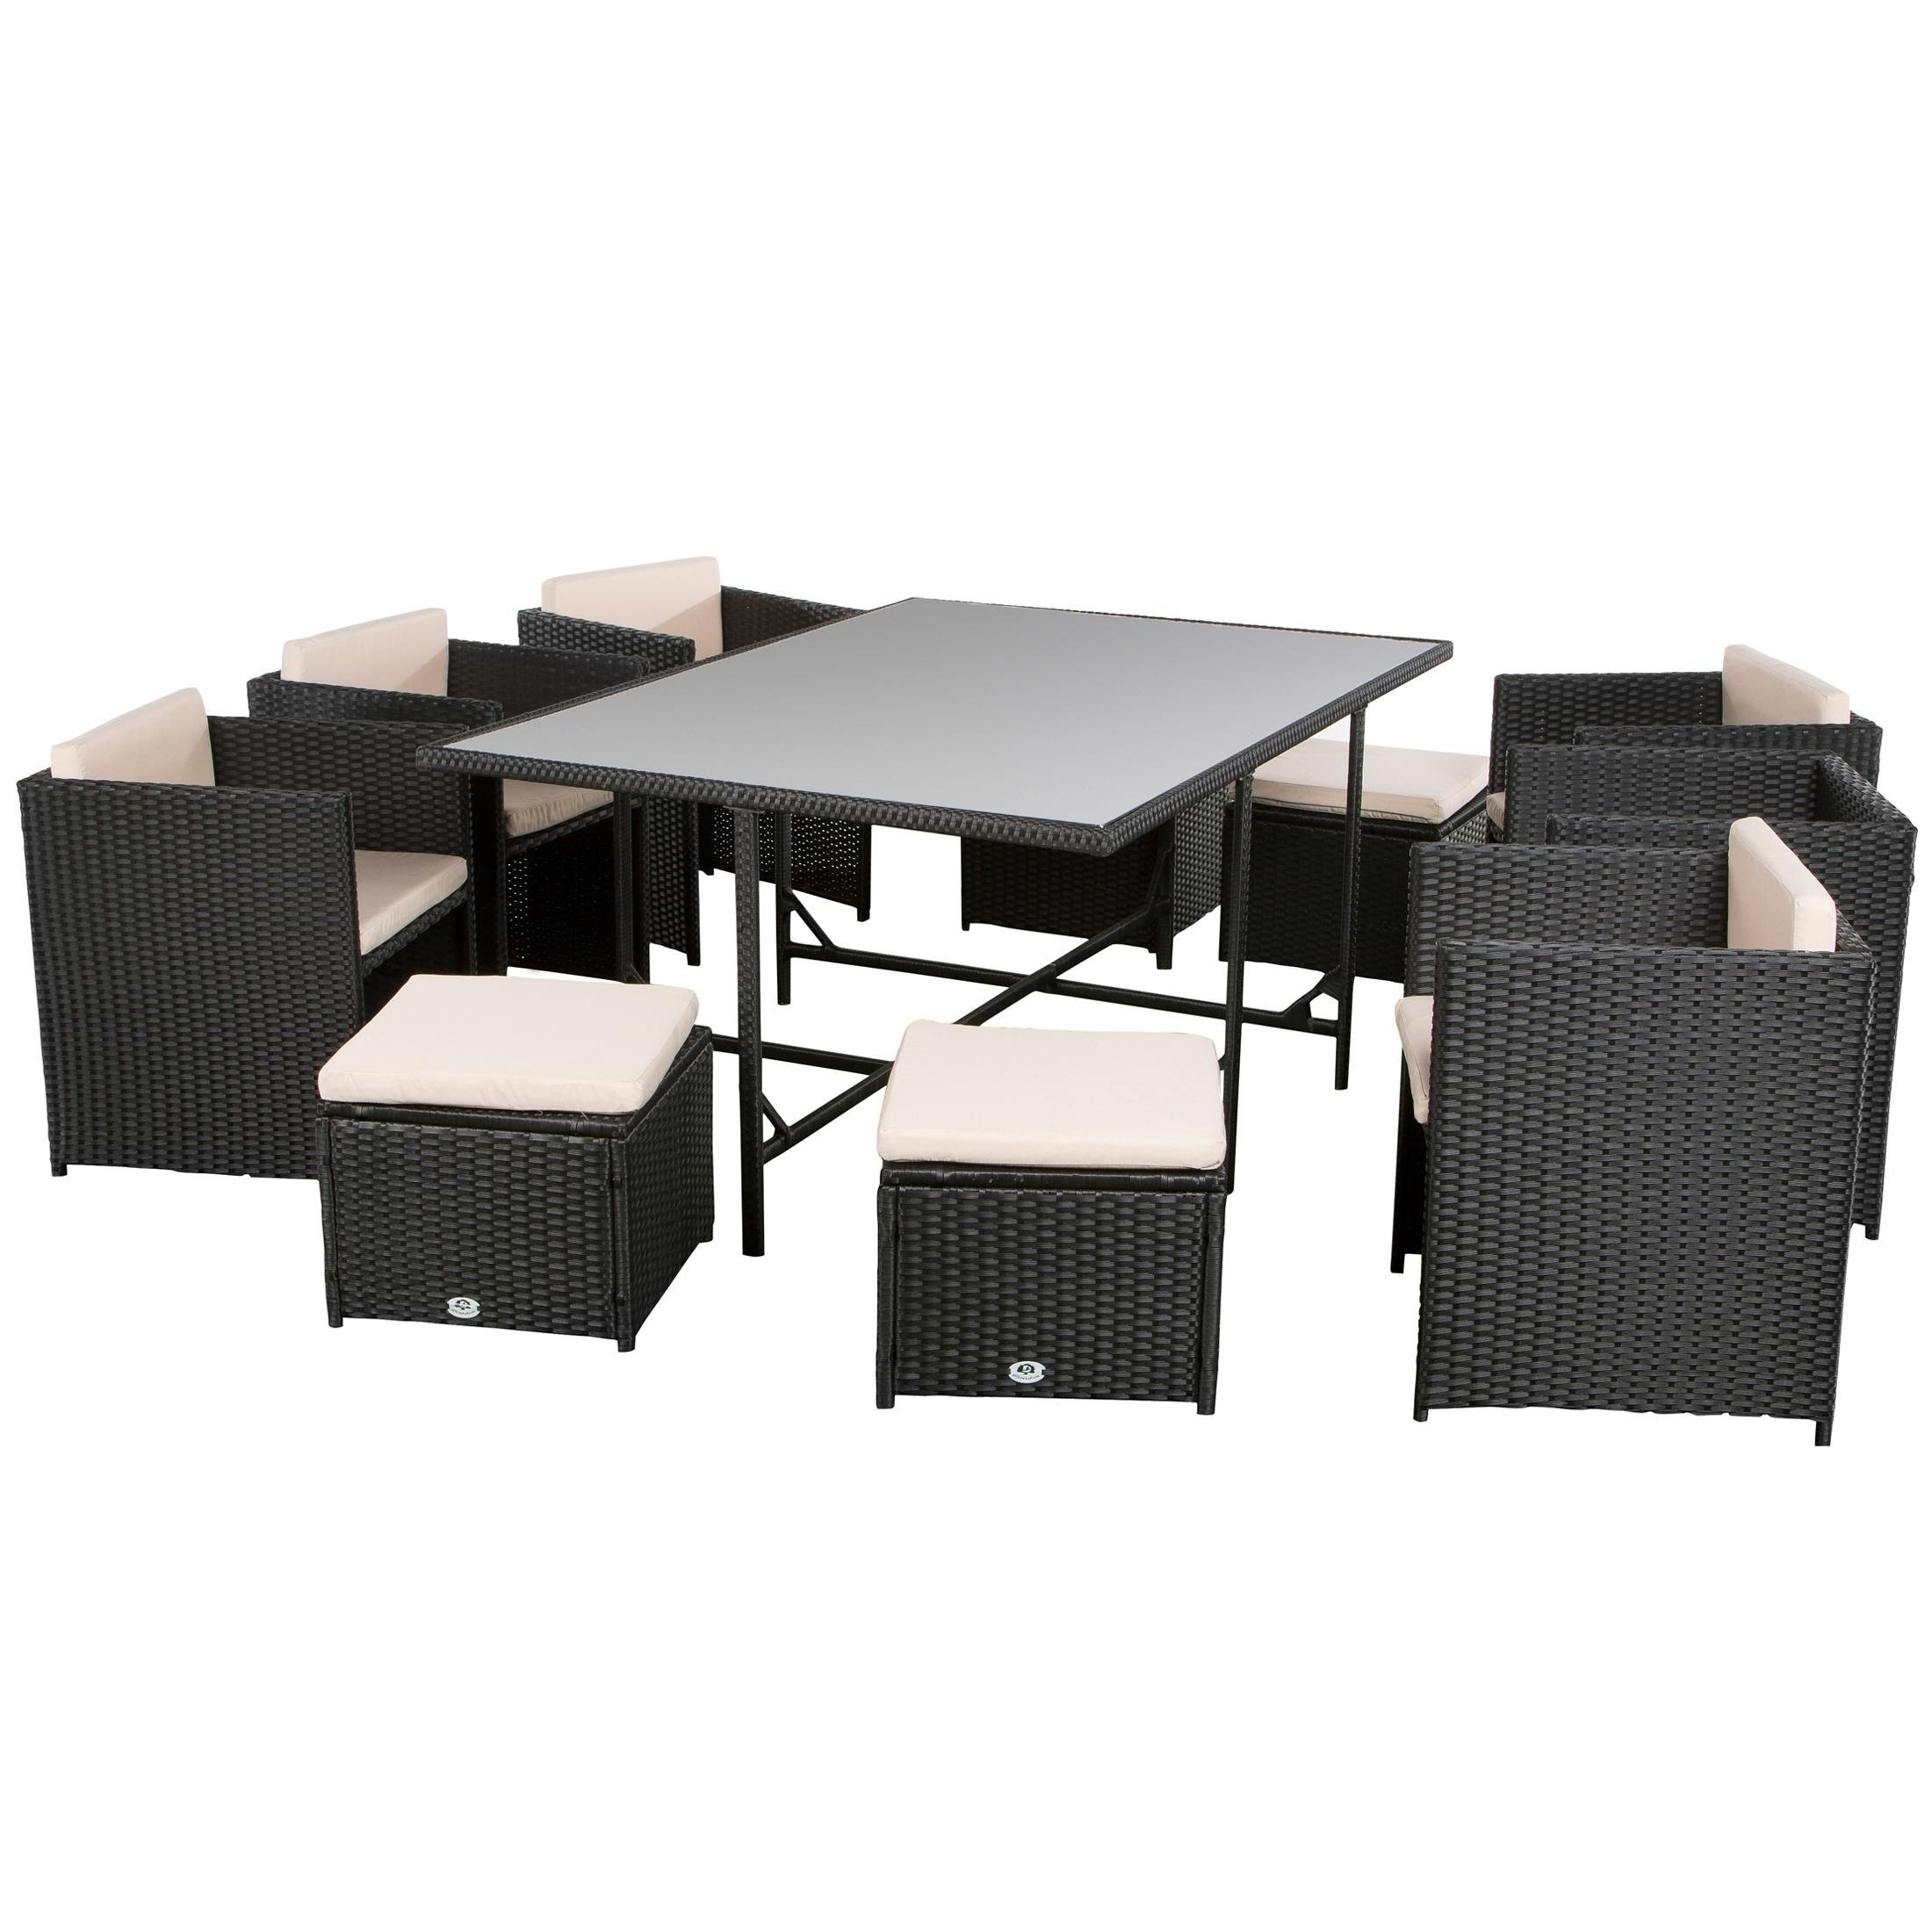 ultranatura poly rattan lounge set palma serie 11 teilig 1 tisch 6 sessel 4. Black Bedroom Furniture Sets. Home Design Ideas